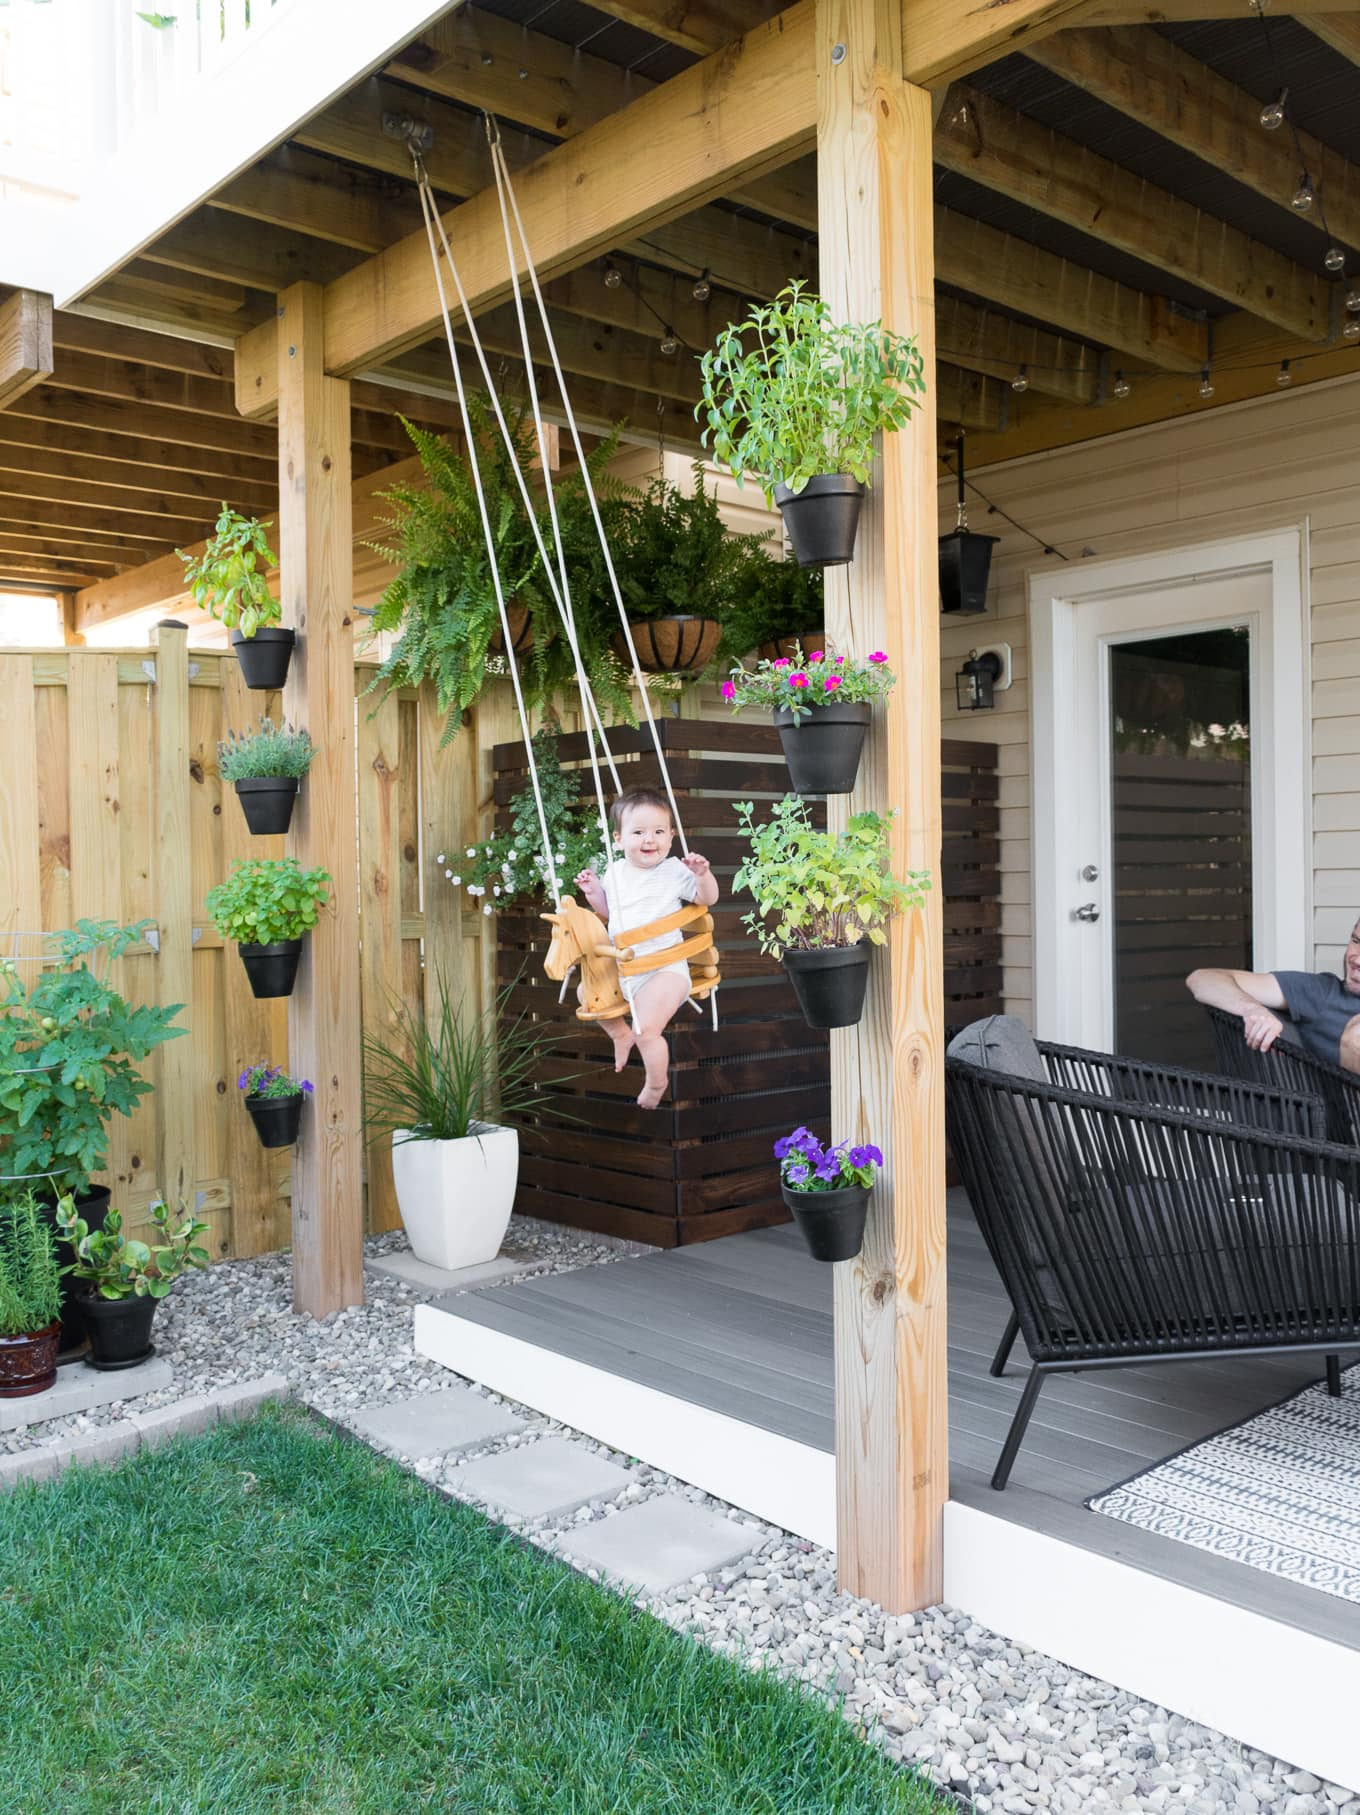 Tiny backyard ideas for babies and kids